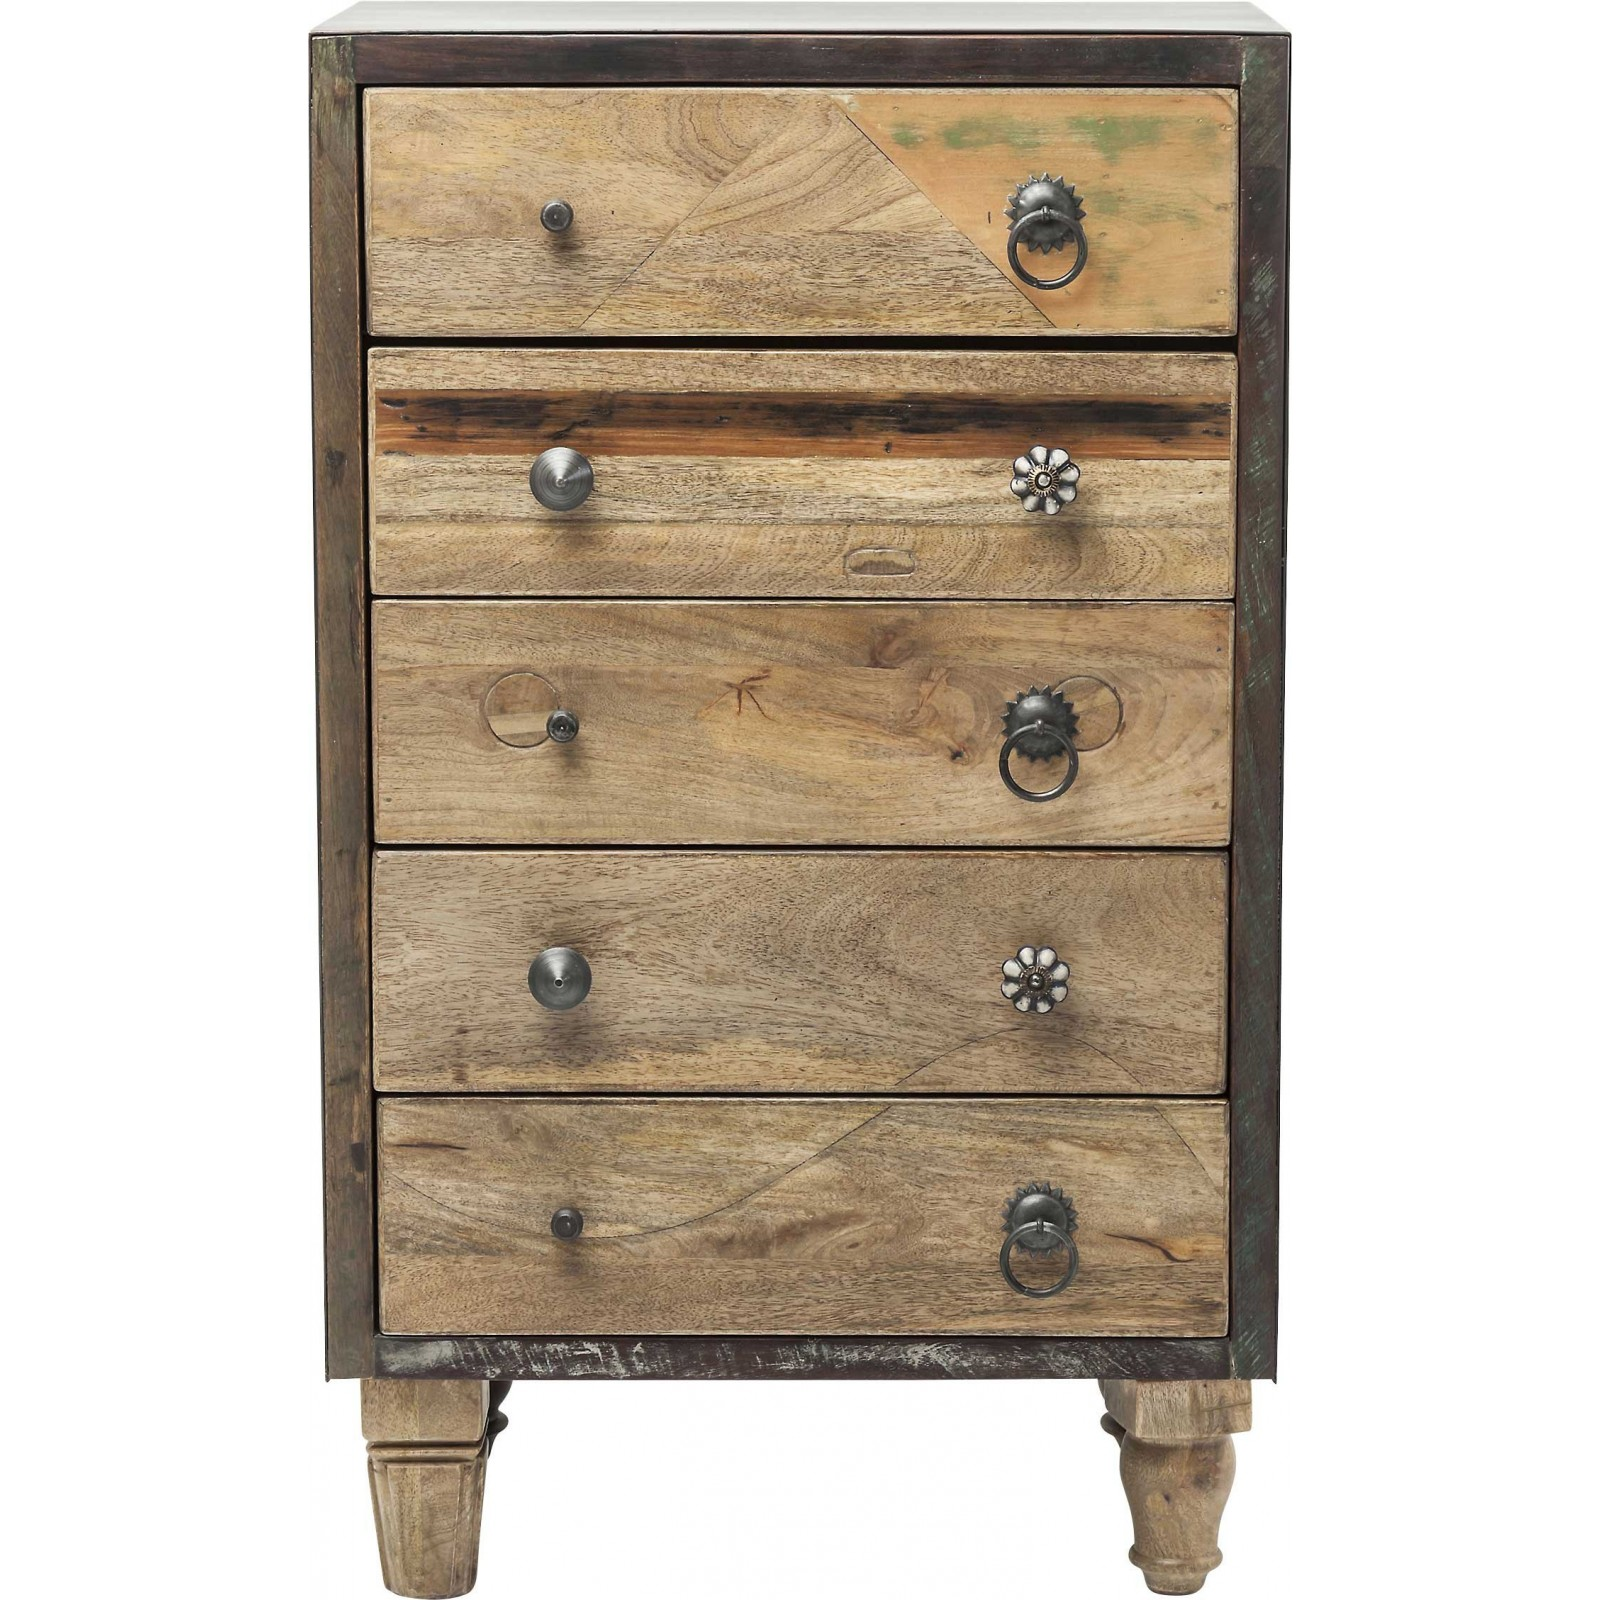 Commode en bois esprit saloon duld range kare design - Meuble commode design ...